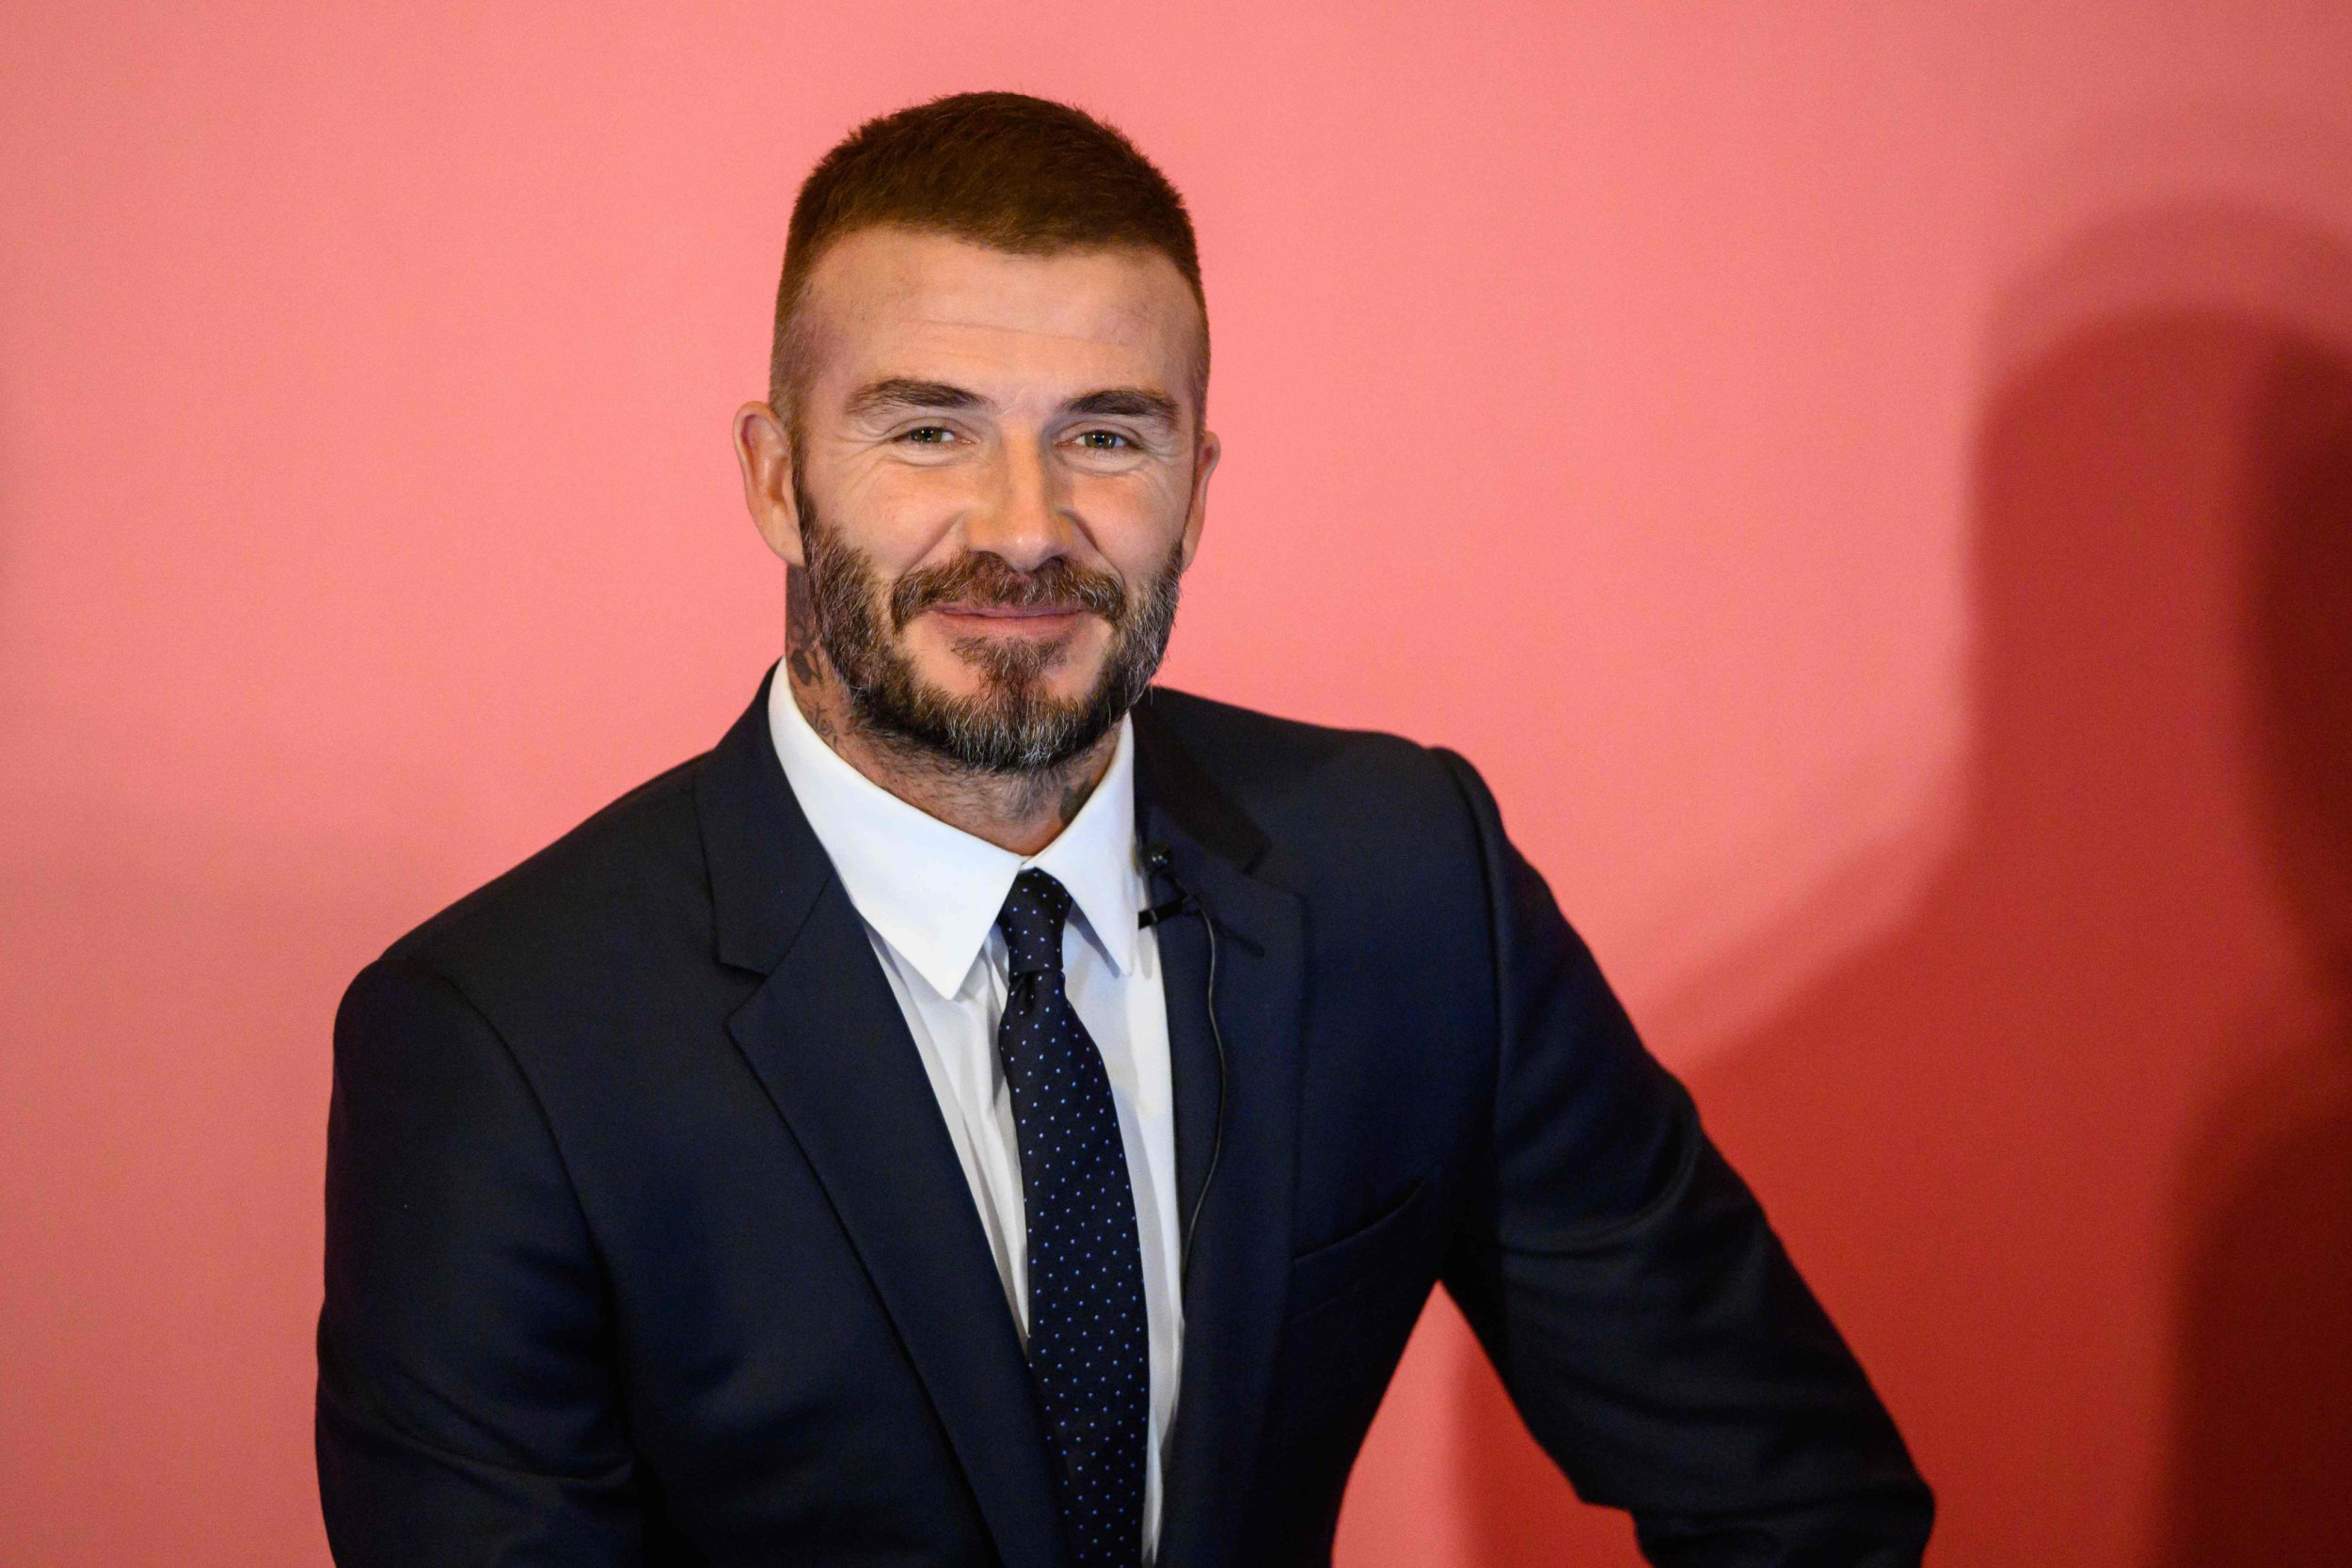 Former England footballer David Beckham speaks during a promotional event where he appeared as the global brand ambassador for insurance company AIA in Hong Kong on September 24, 2018. (Photo by Anthony WALLACE / AFP)ANTHONY WALLACE/AFP/Getty Images